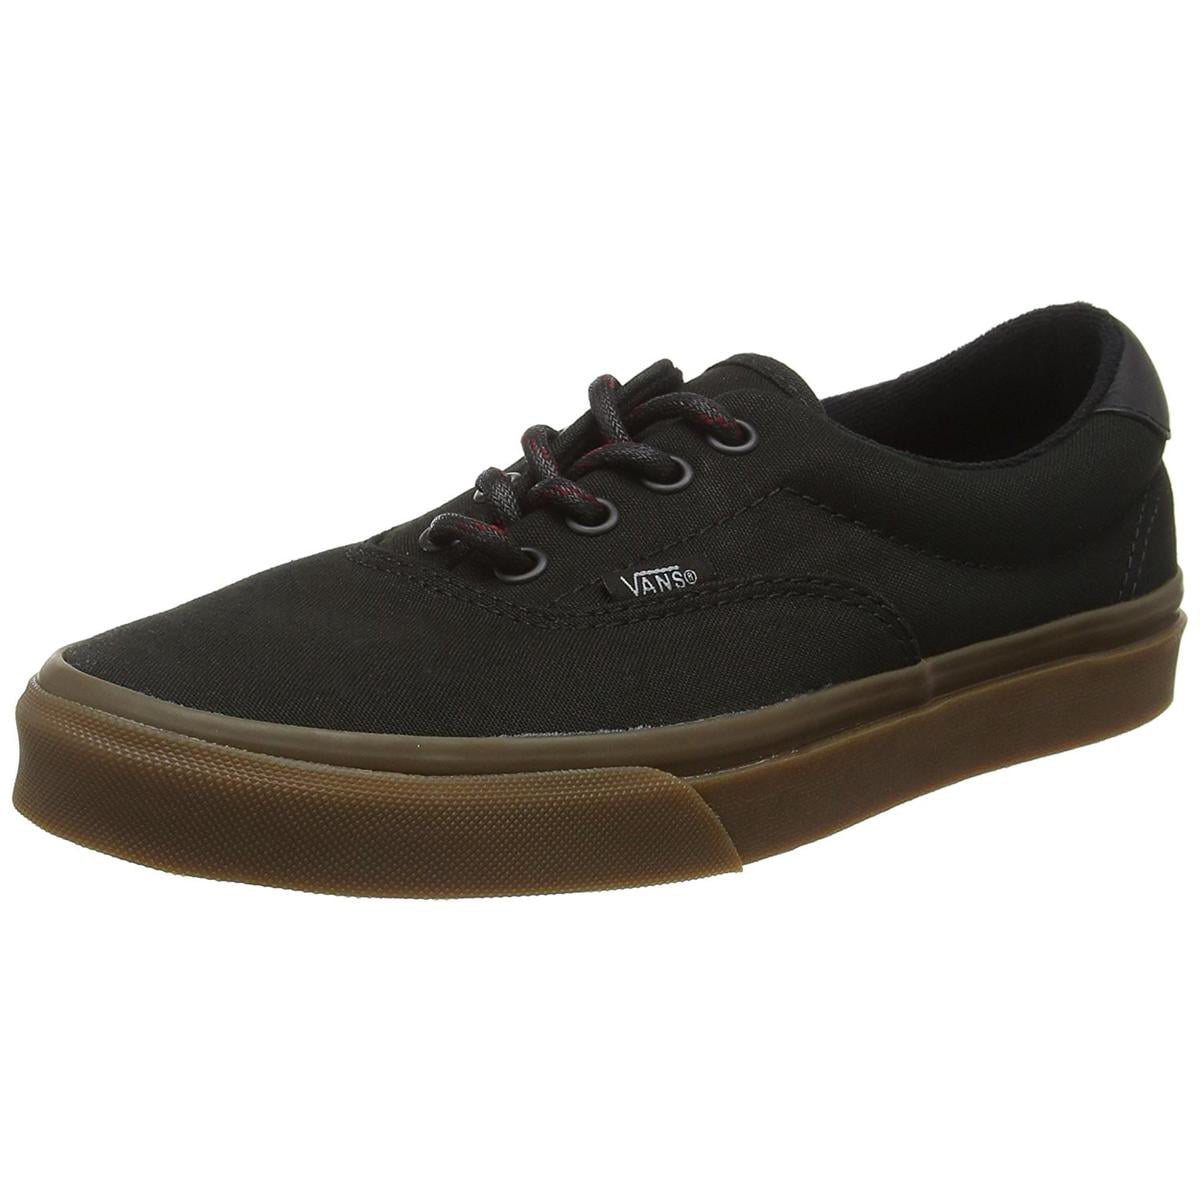 Vans Era 59 (Hiking) Unisex Black/Gum Shoes